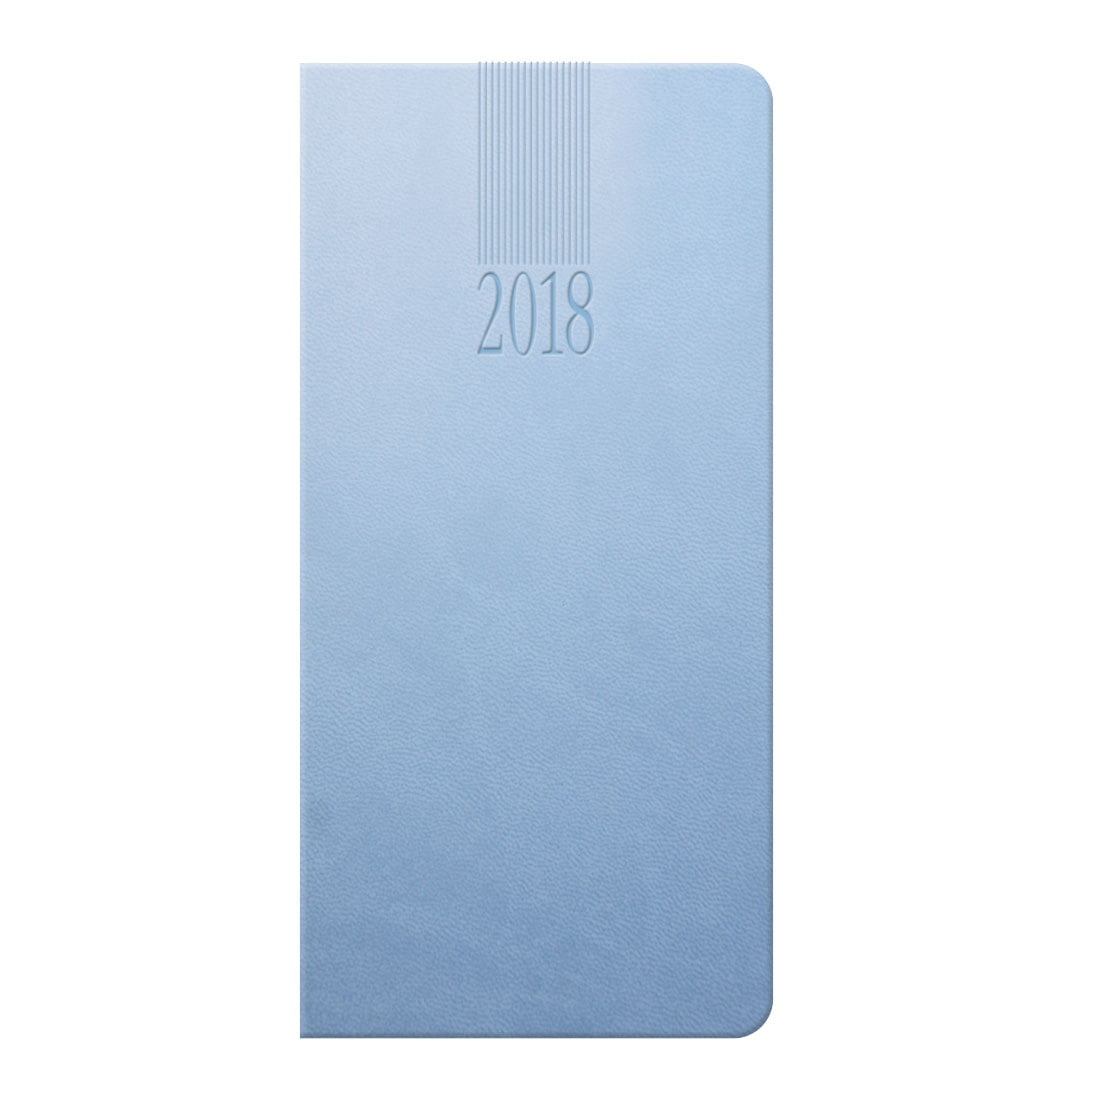 Tuscon weekly promotional pocket diary in baby blue with a soft touch cover